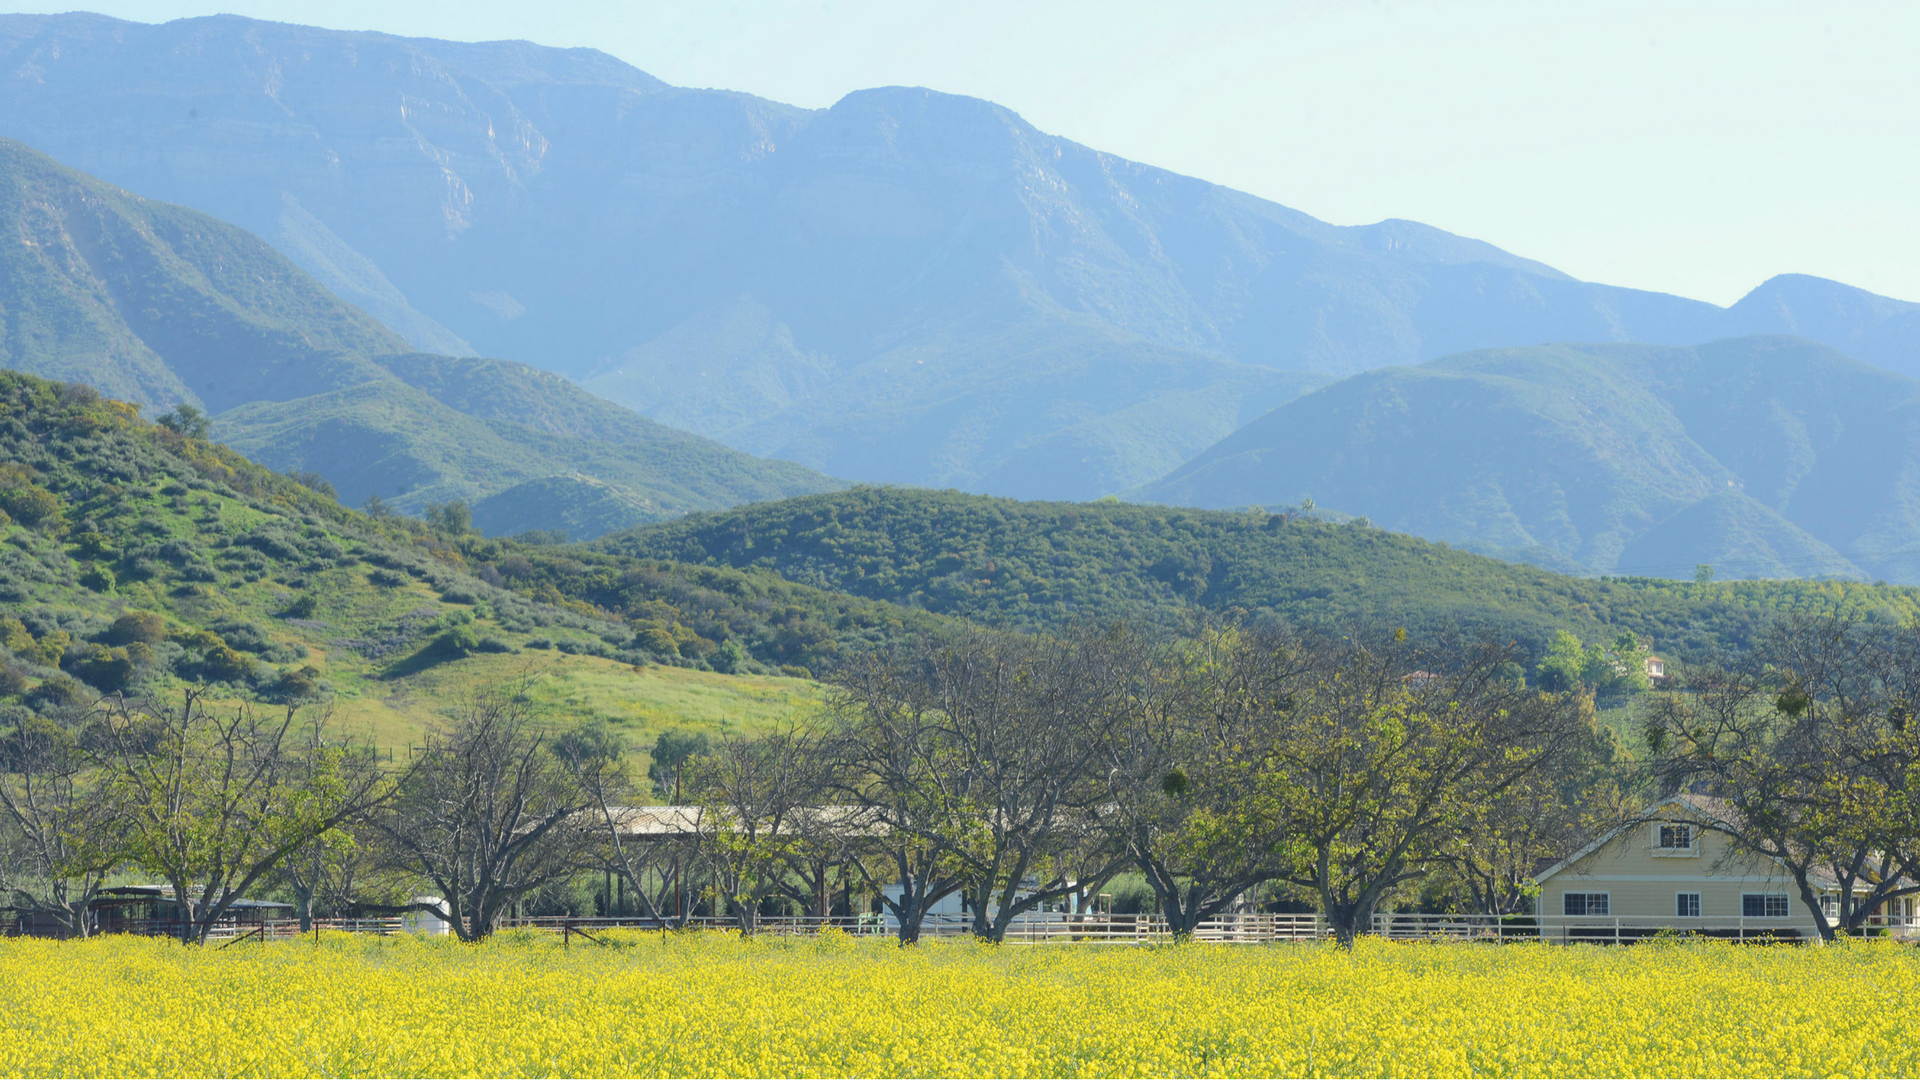 2018 Grant Recipients   OWF awards grants to 13 organizations in the Ojai Valley   View Grantees